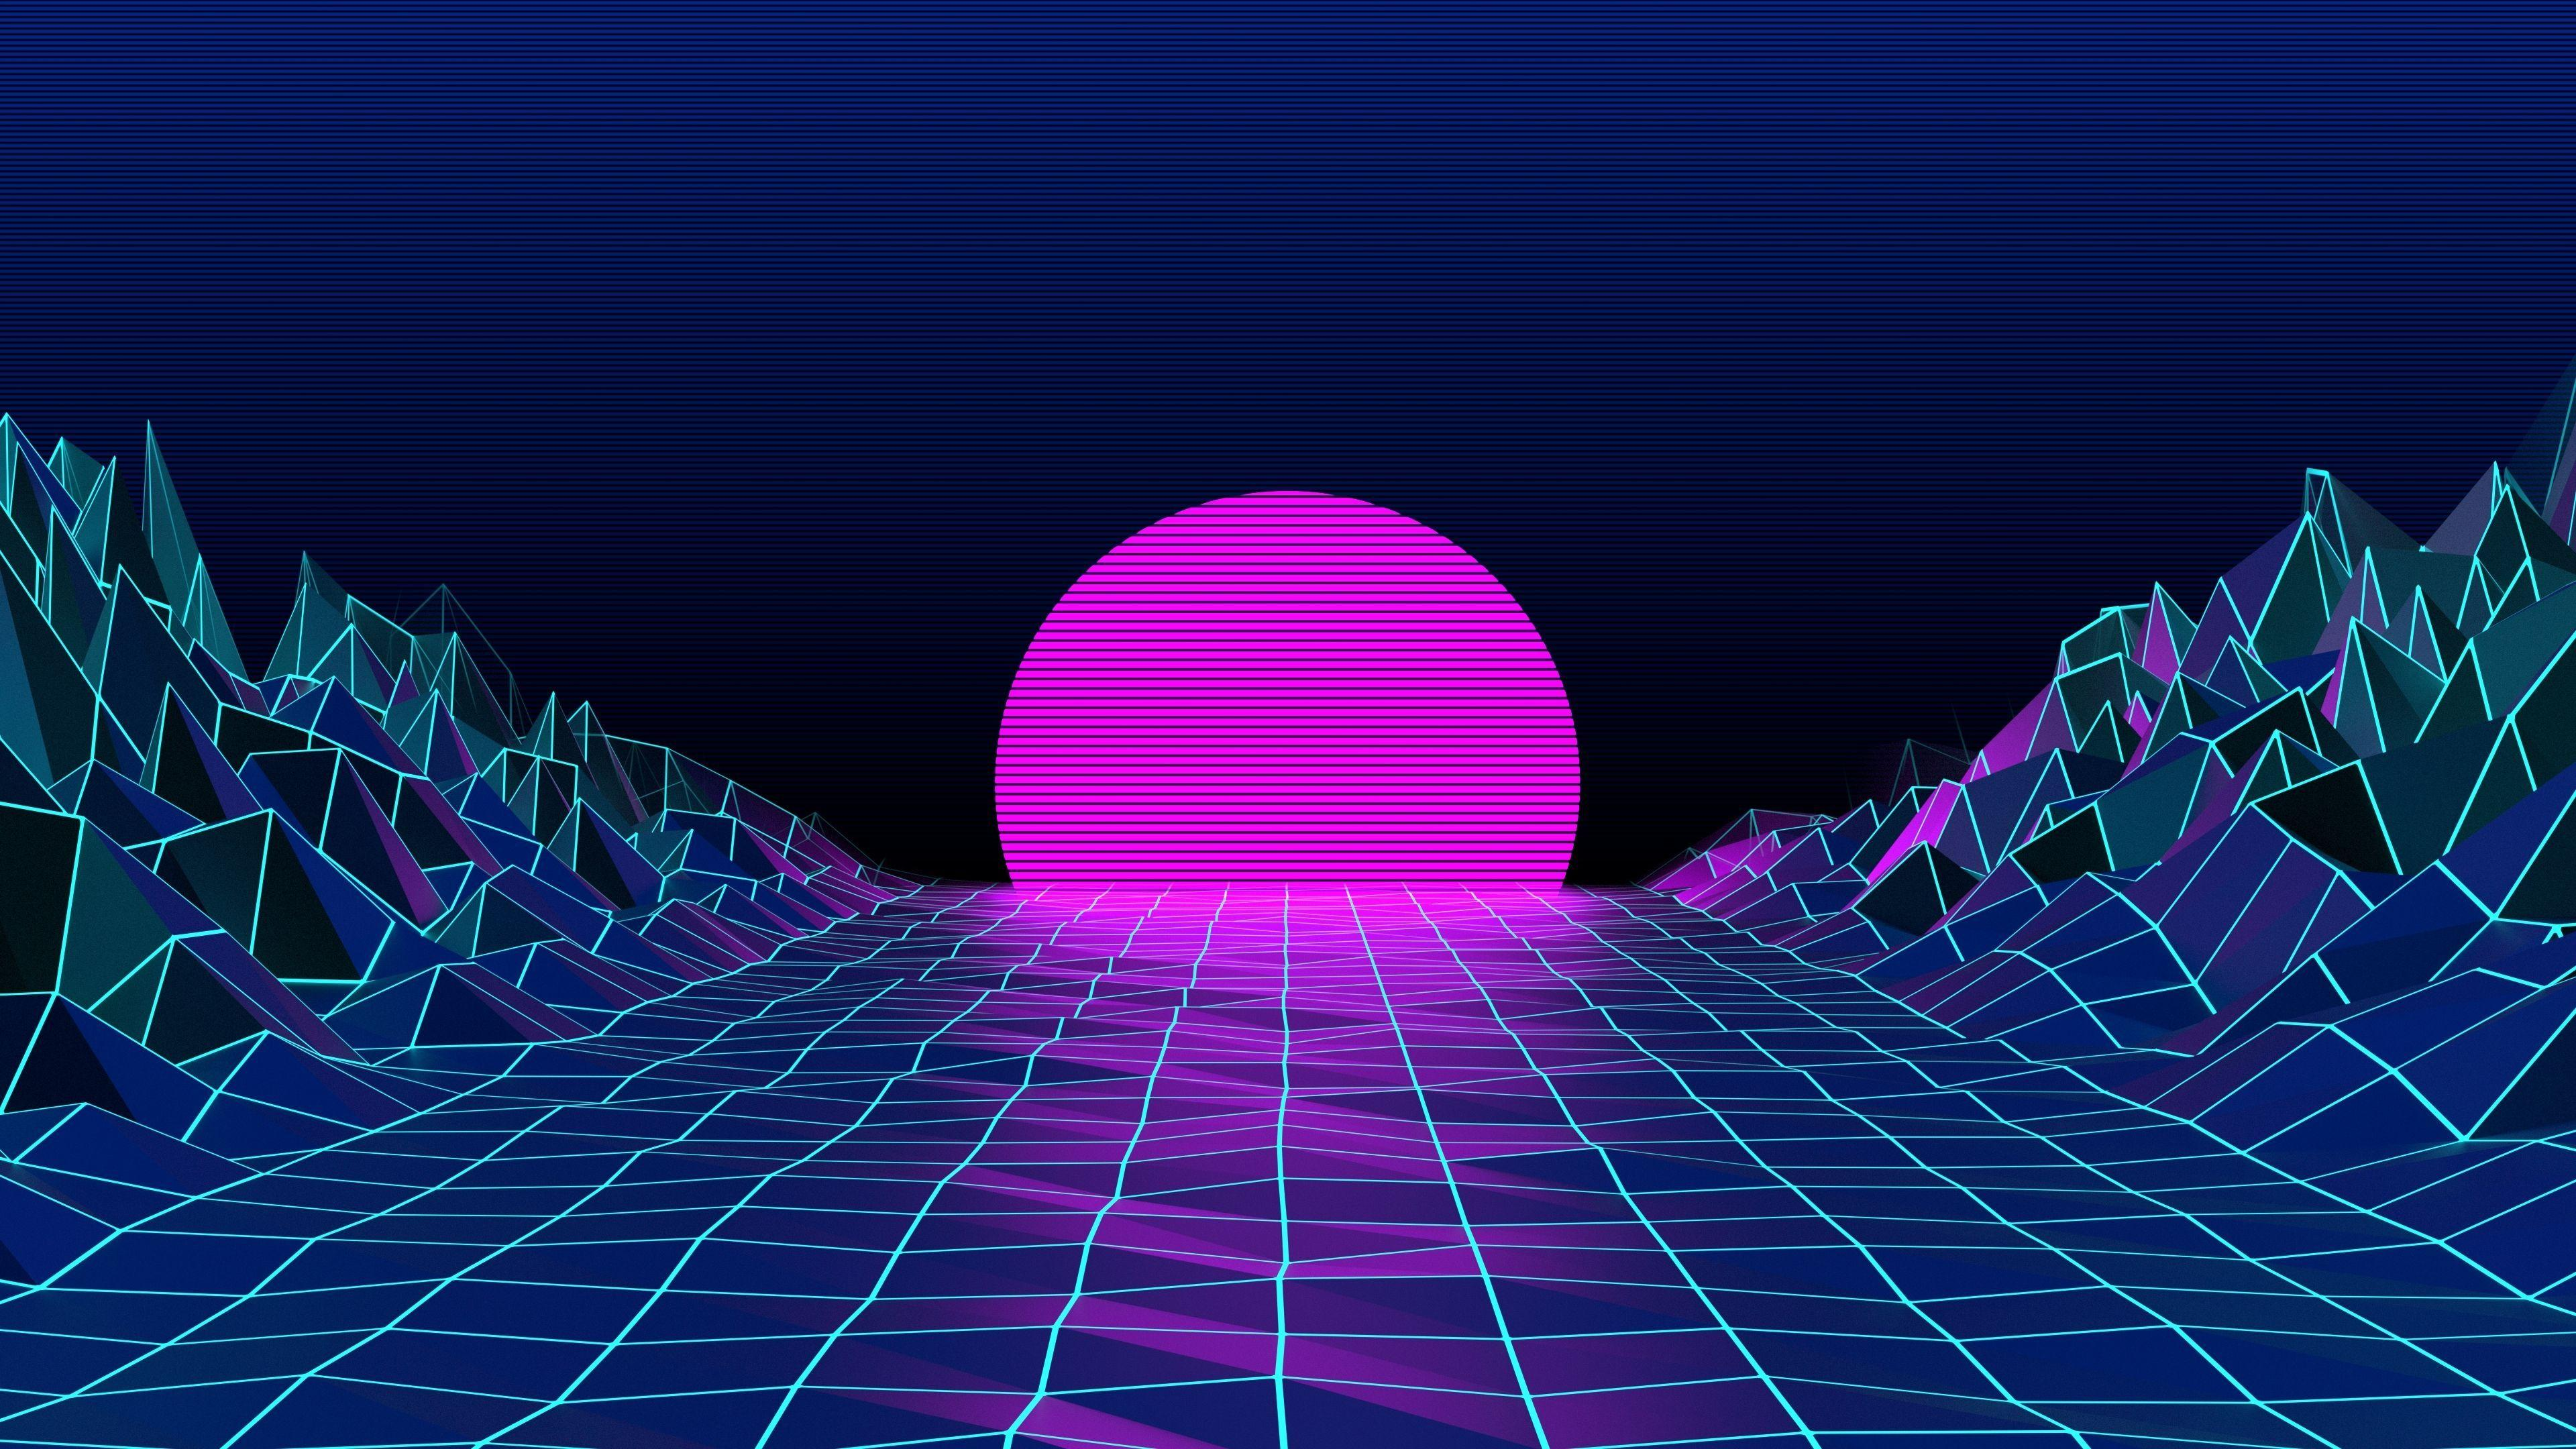 Trippy Aesthetic Computer Wallpapers Wallpaper Cave